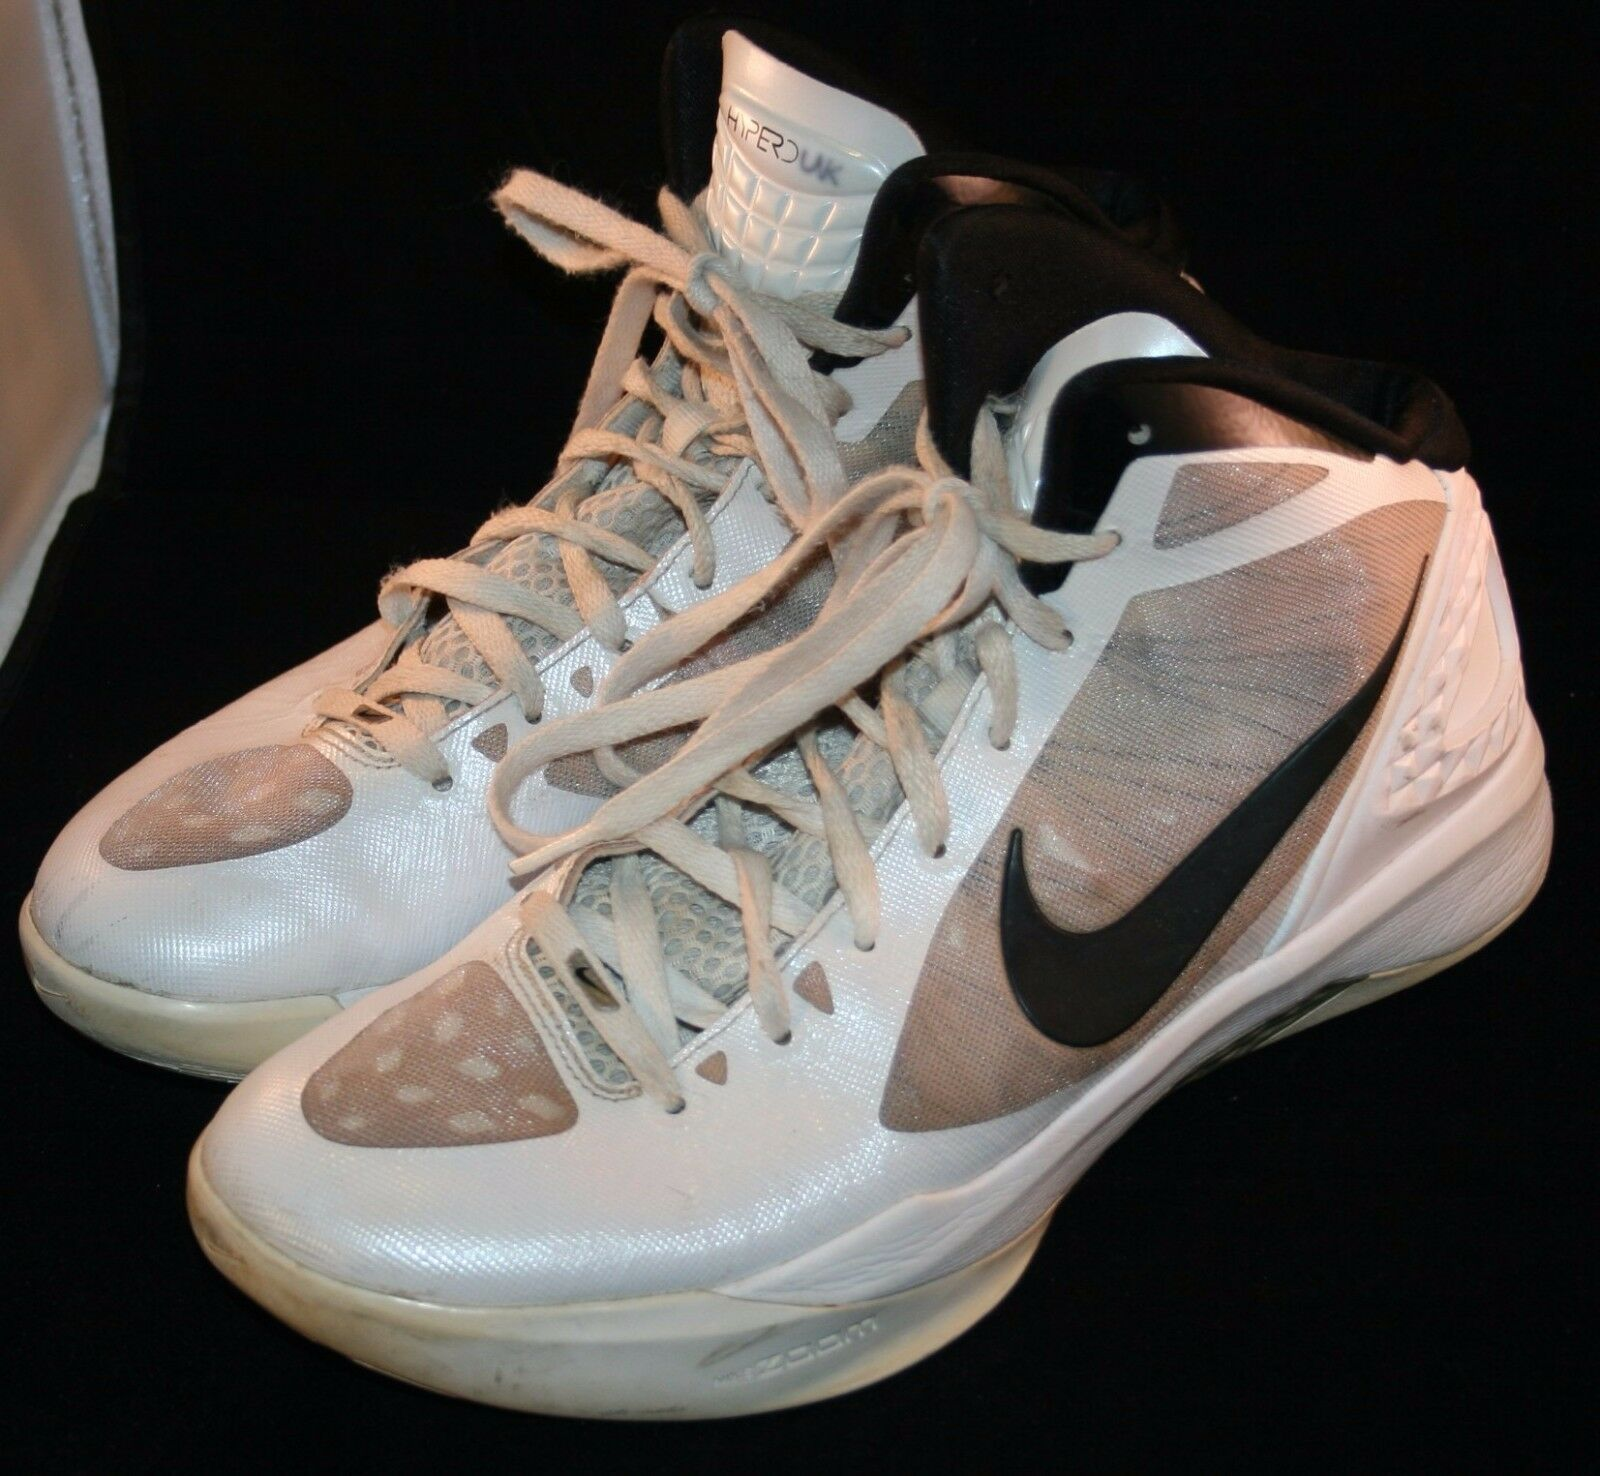 Nike Hyperdunk Flywire Zoom Basketball shoes Sz 9.5 White 9 1 2 Sneakers Mens